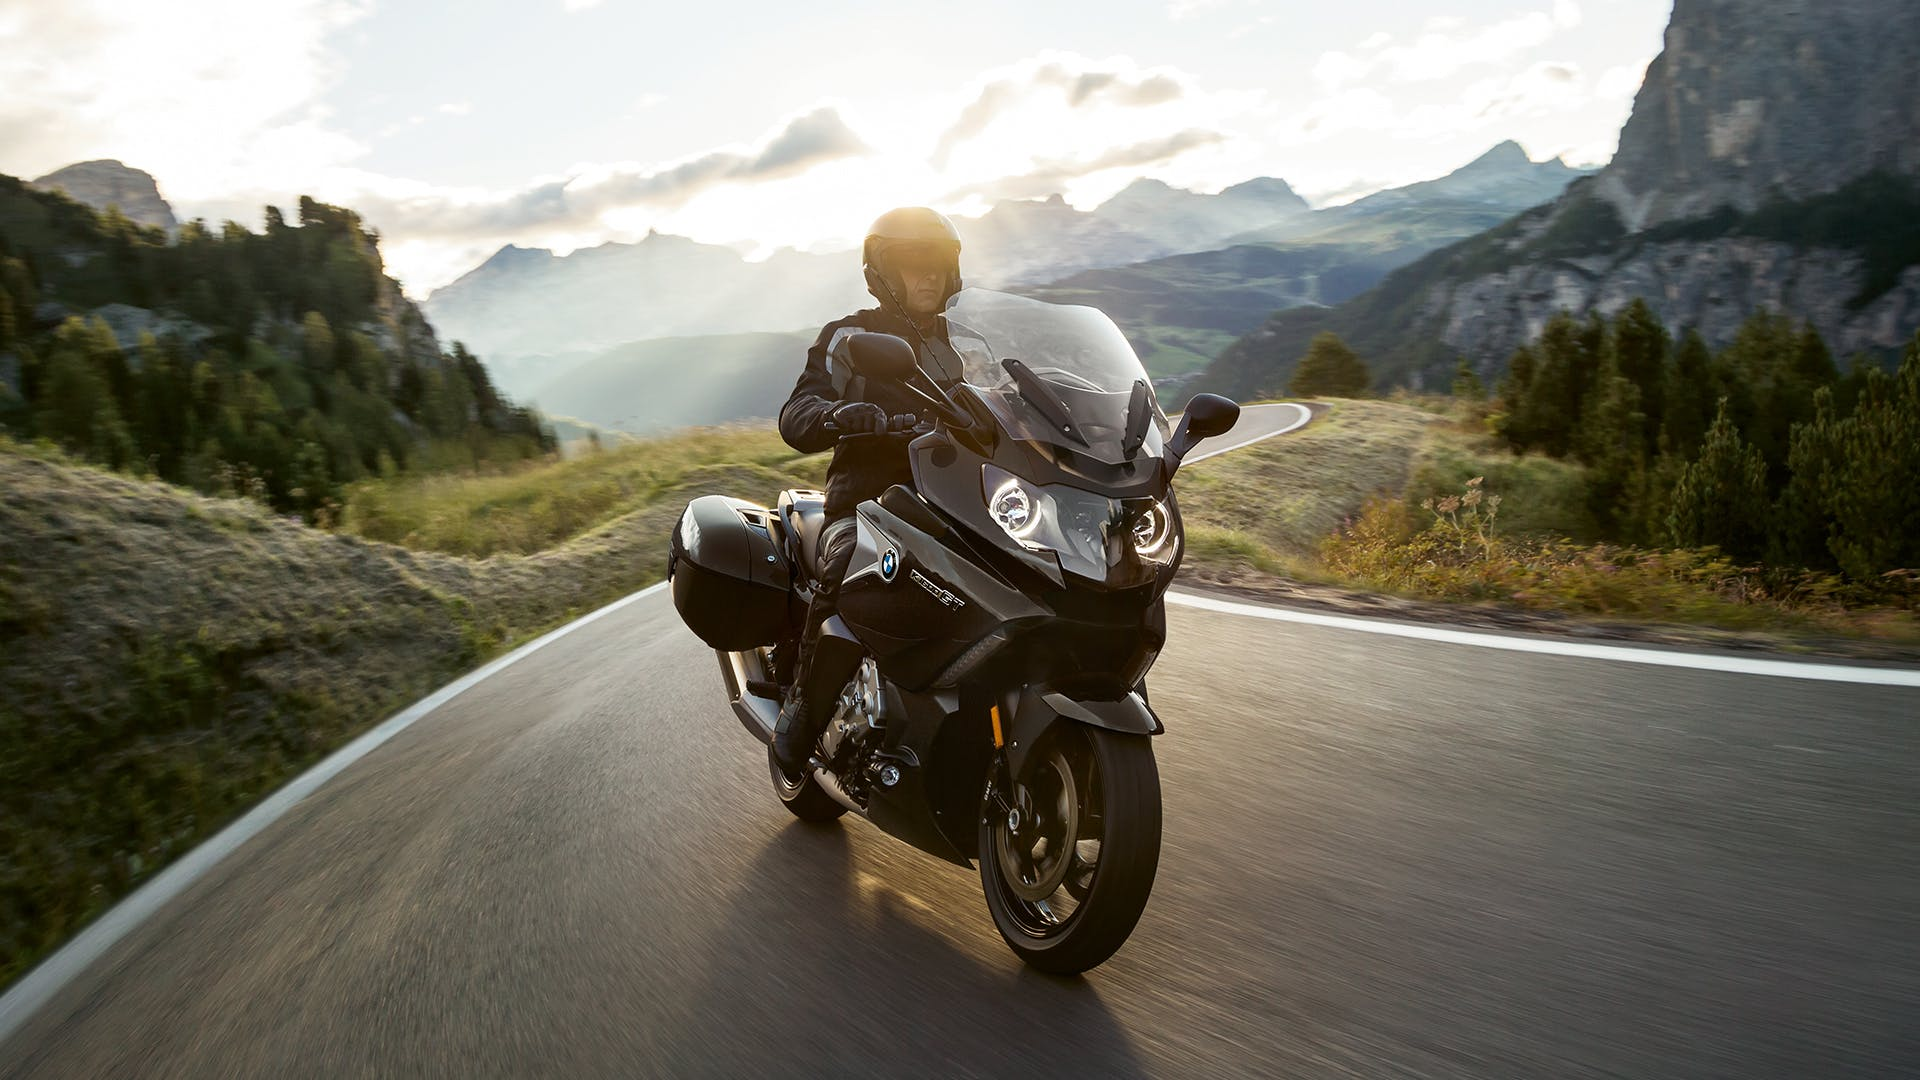 BMW K 1600 GT being ridden on the hill road